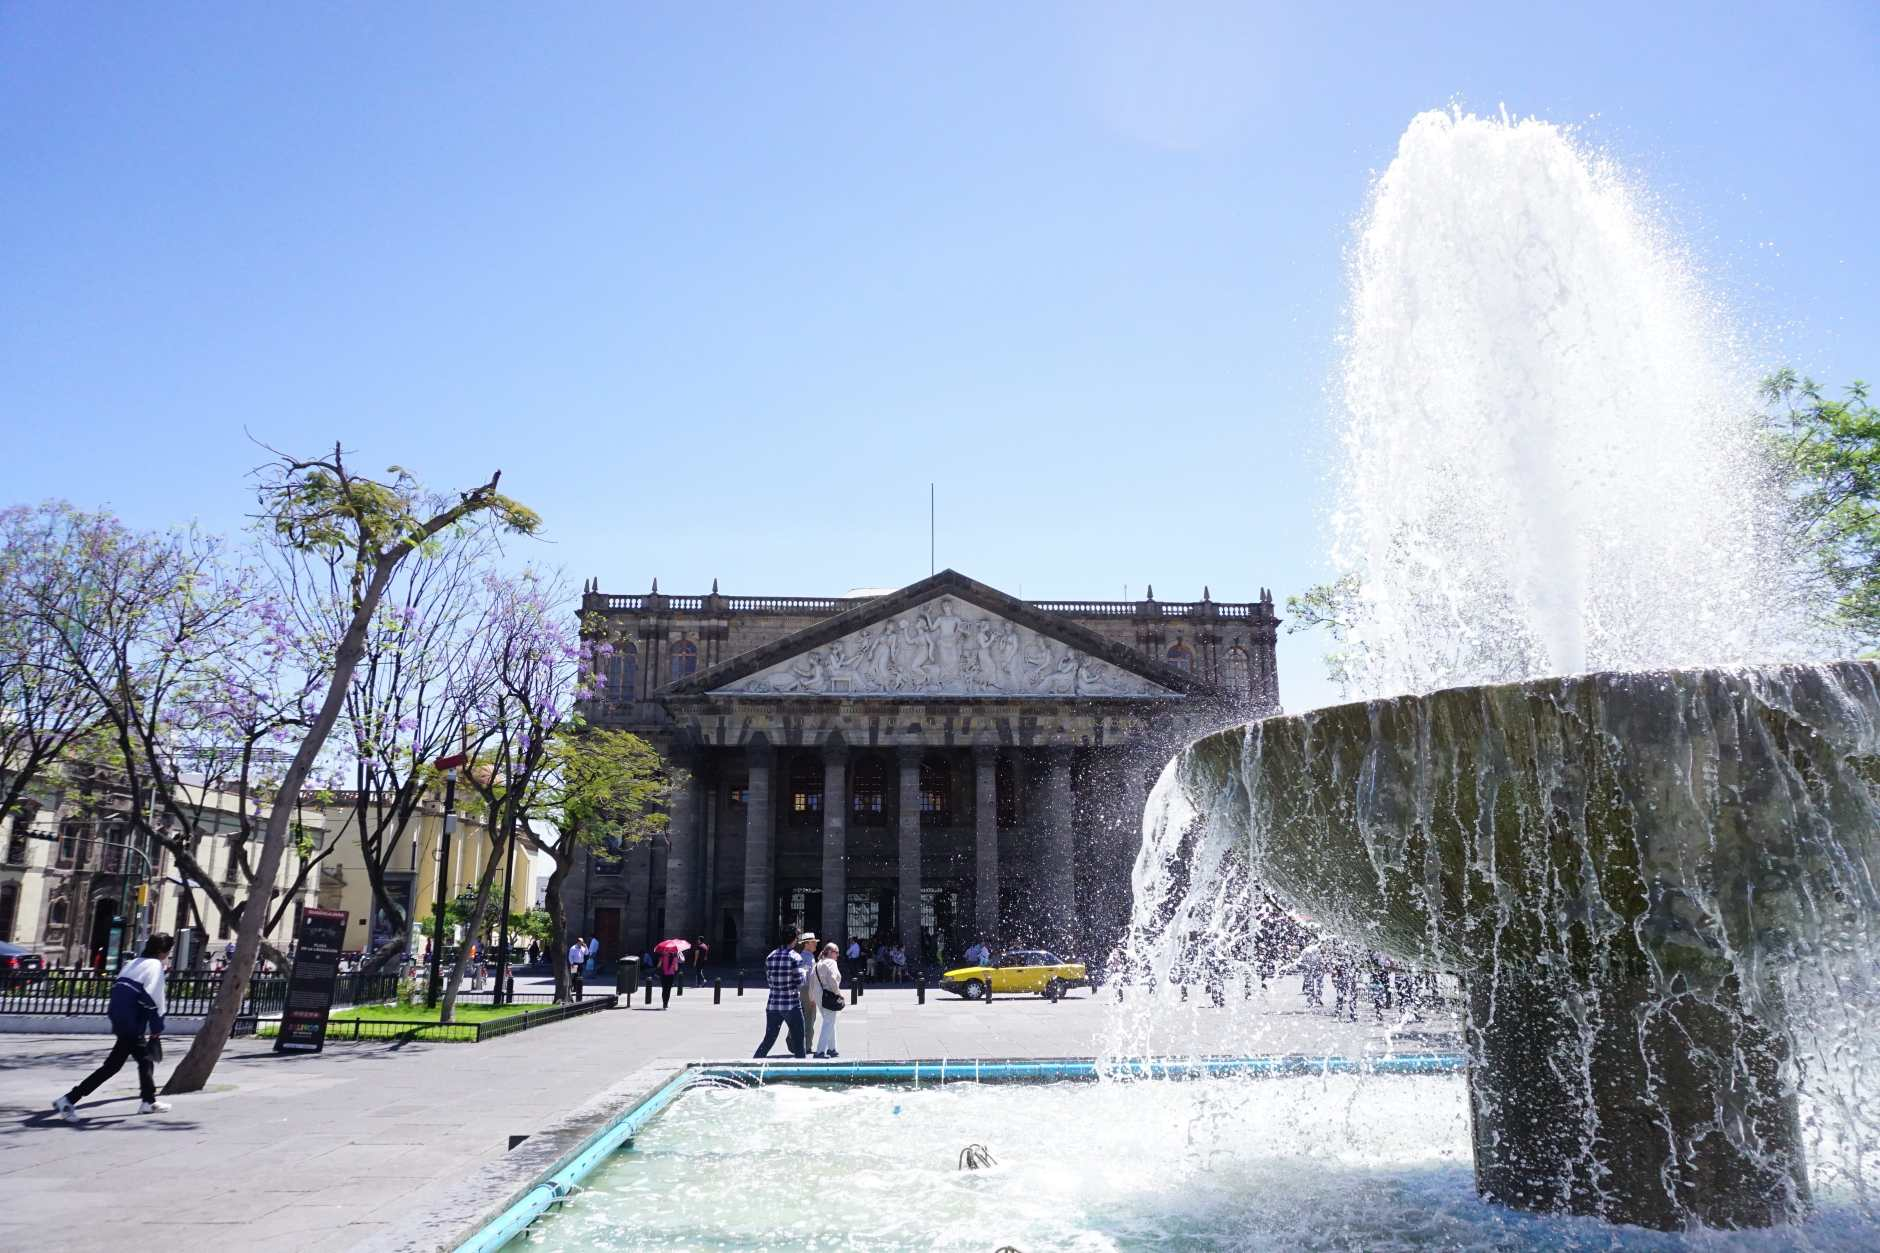 City Guide: Guadalajara - This City Should Definitely Be On Your List